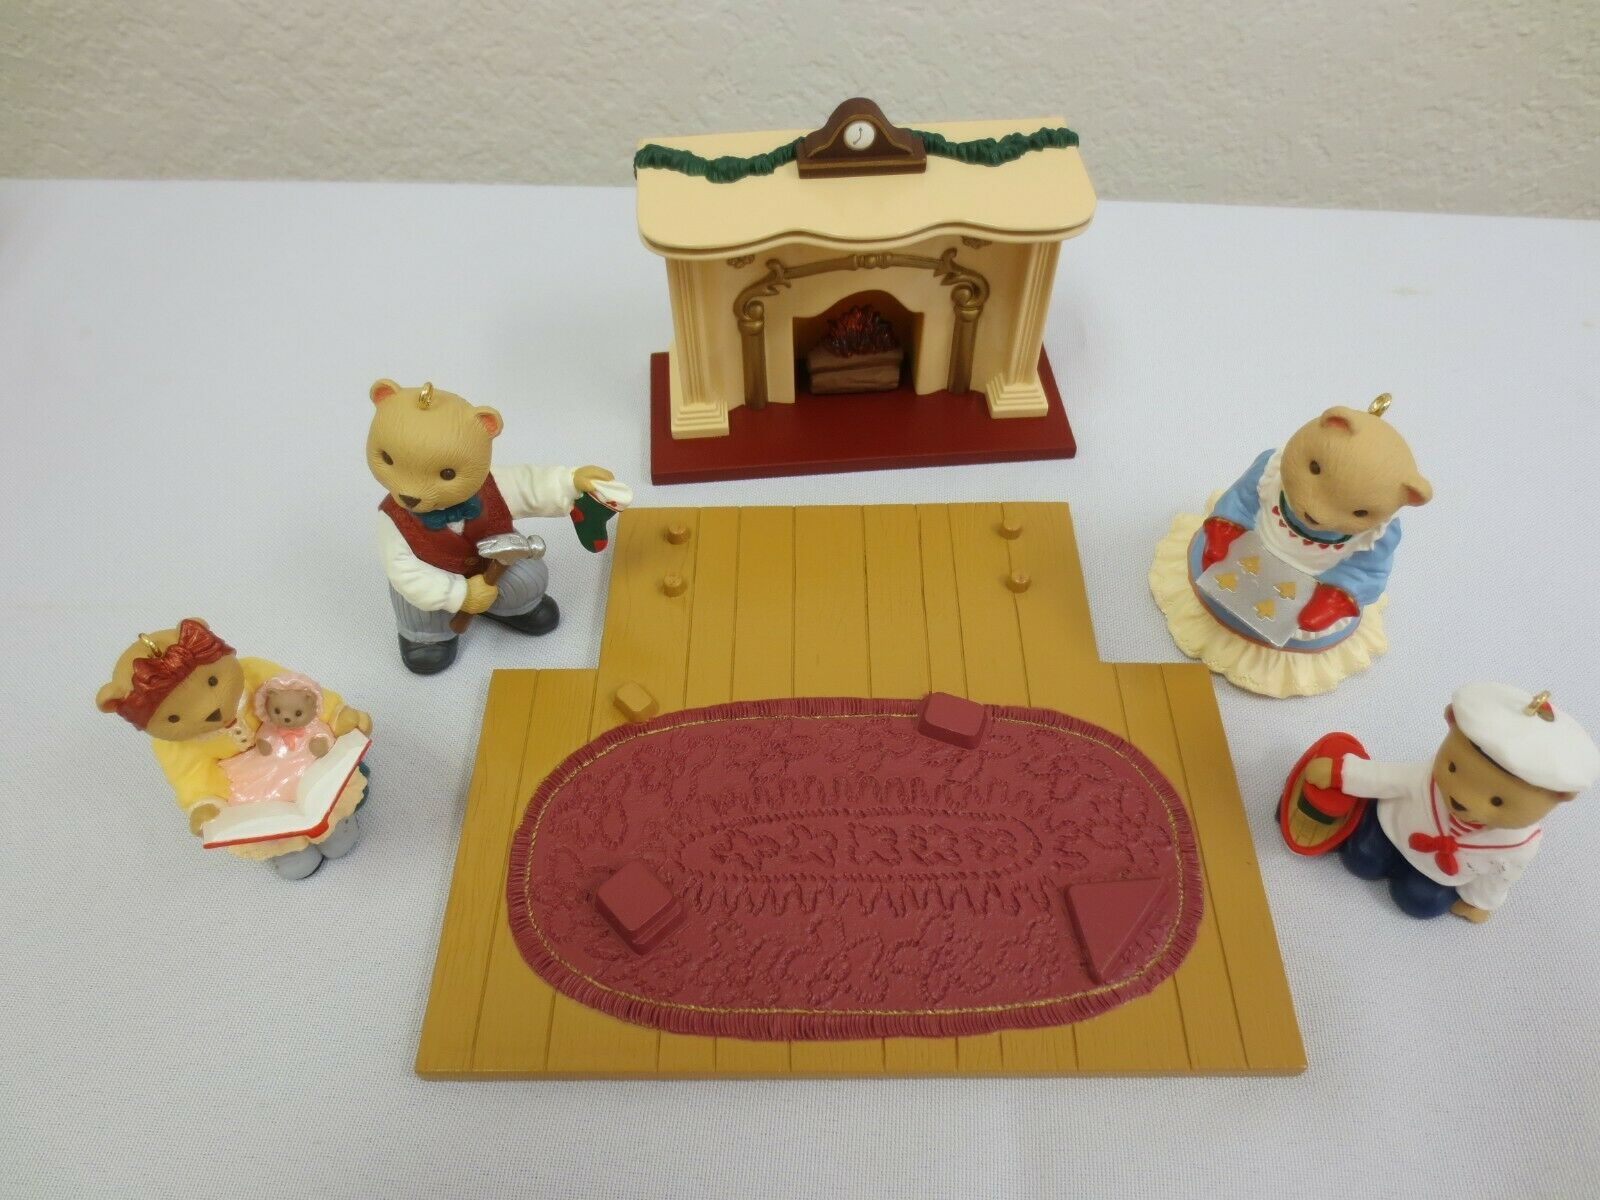 Hallmark Keepsake Ornament 1993 The Bearingers  with Flickering Fireplace 5 pcs